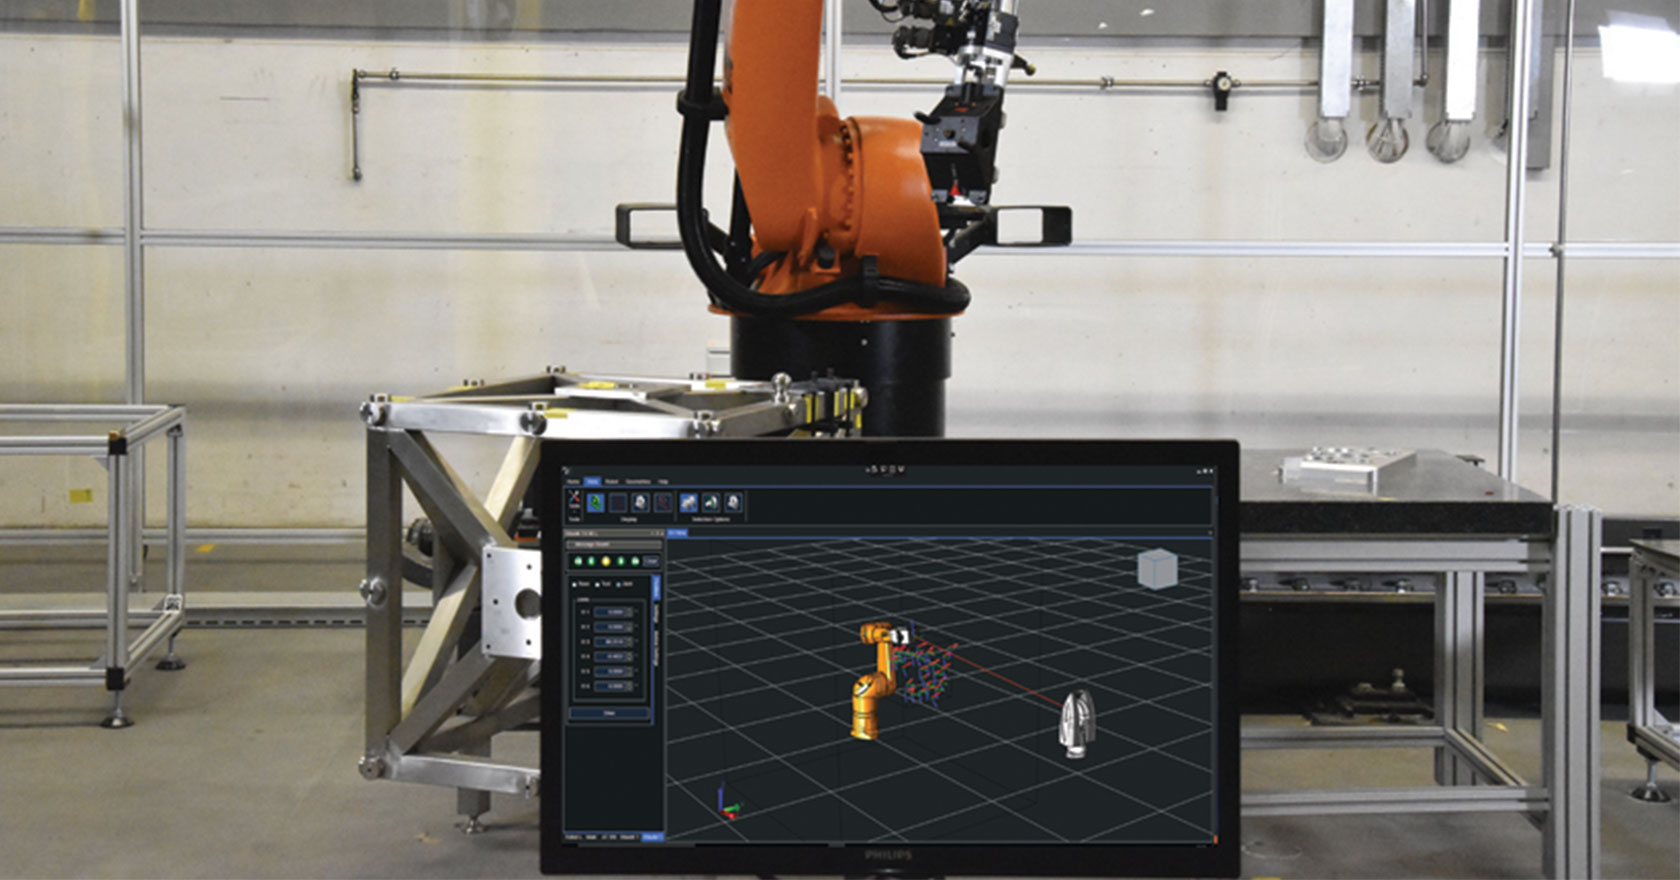 Full Simulation, Calibration and ISO 9283 Performance Testing for Industrial Robotics